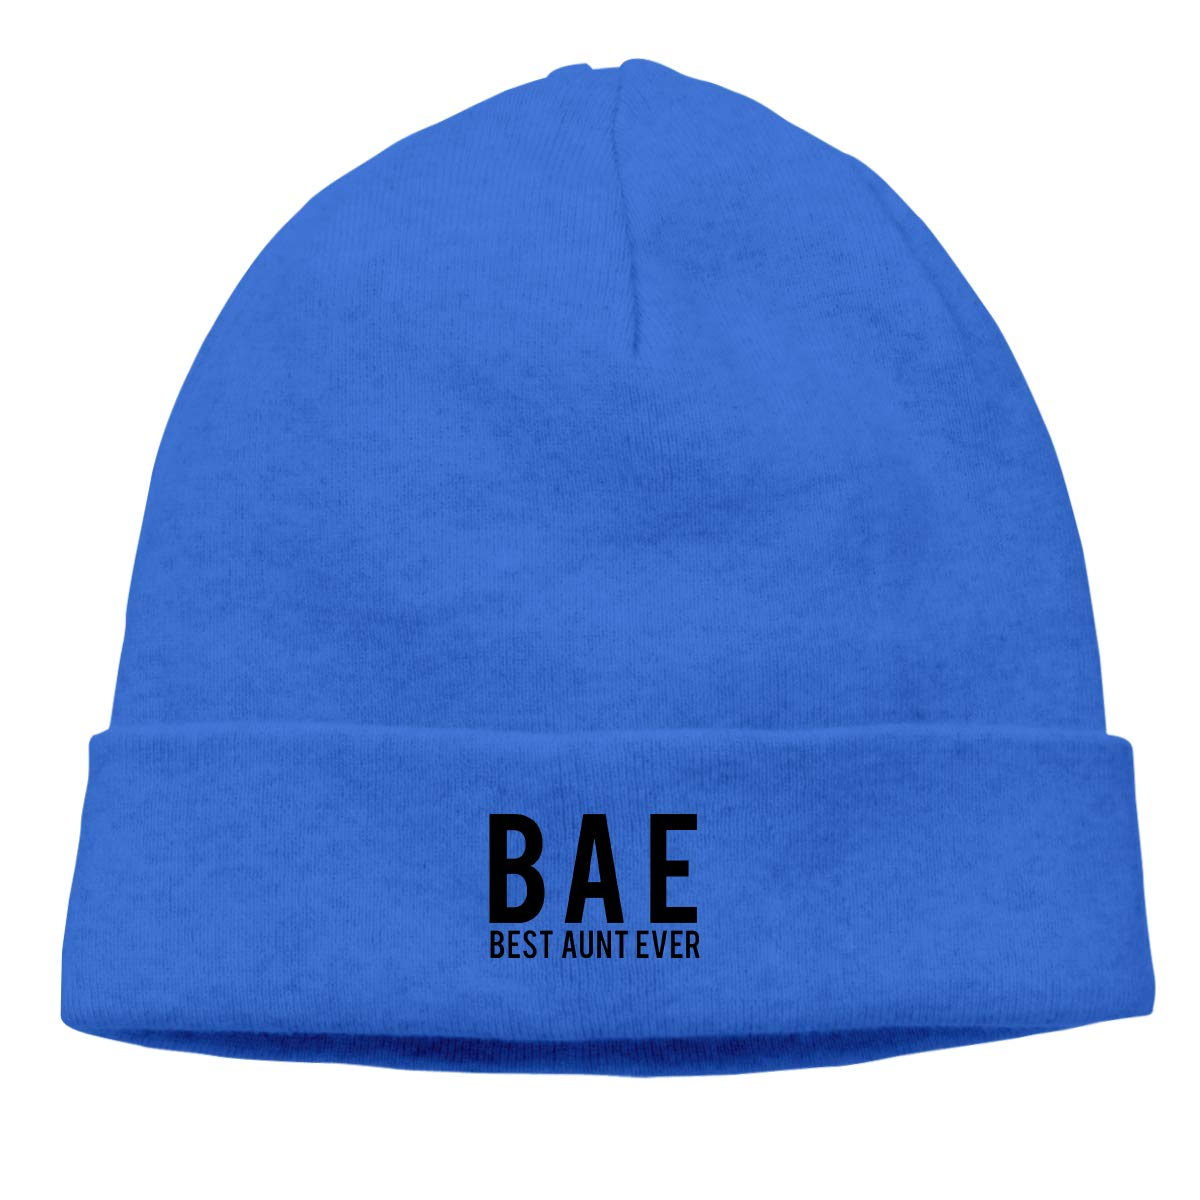 Bae Best Aunt Ever Logo Unisex Cuffed Oversized Baggy Slouchy Beanie Hat